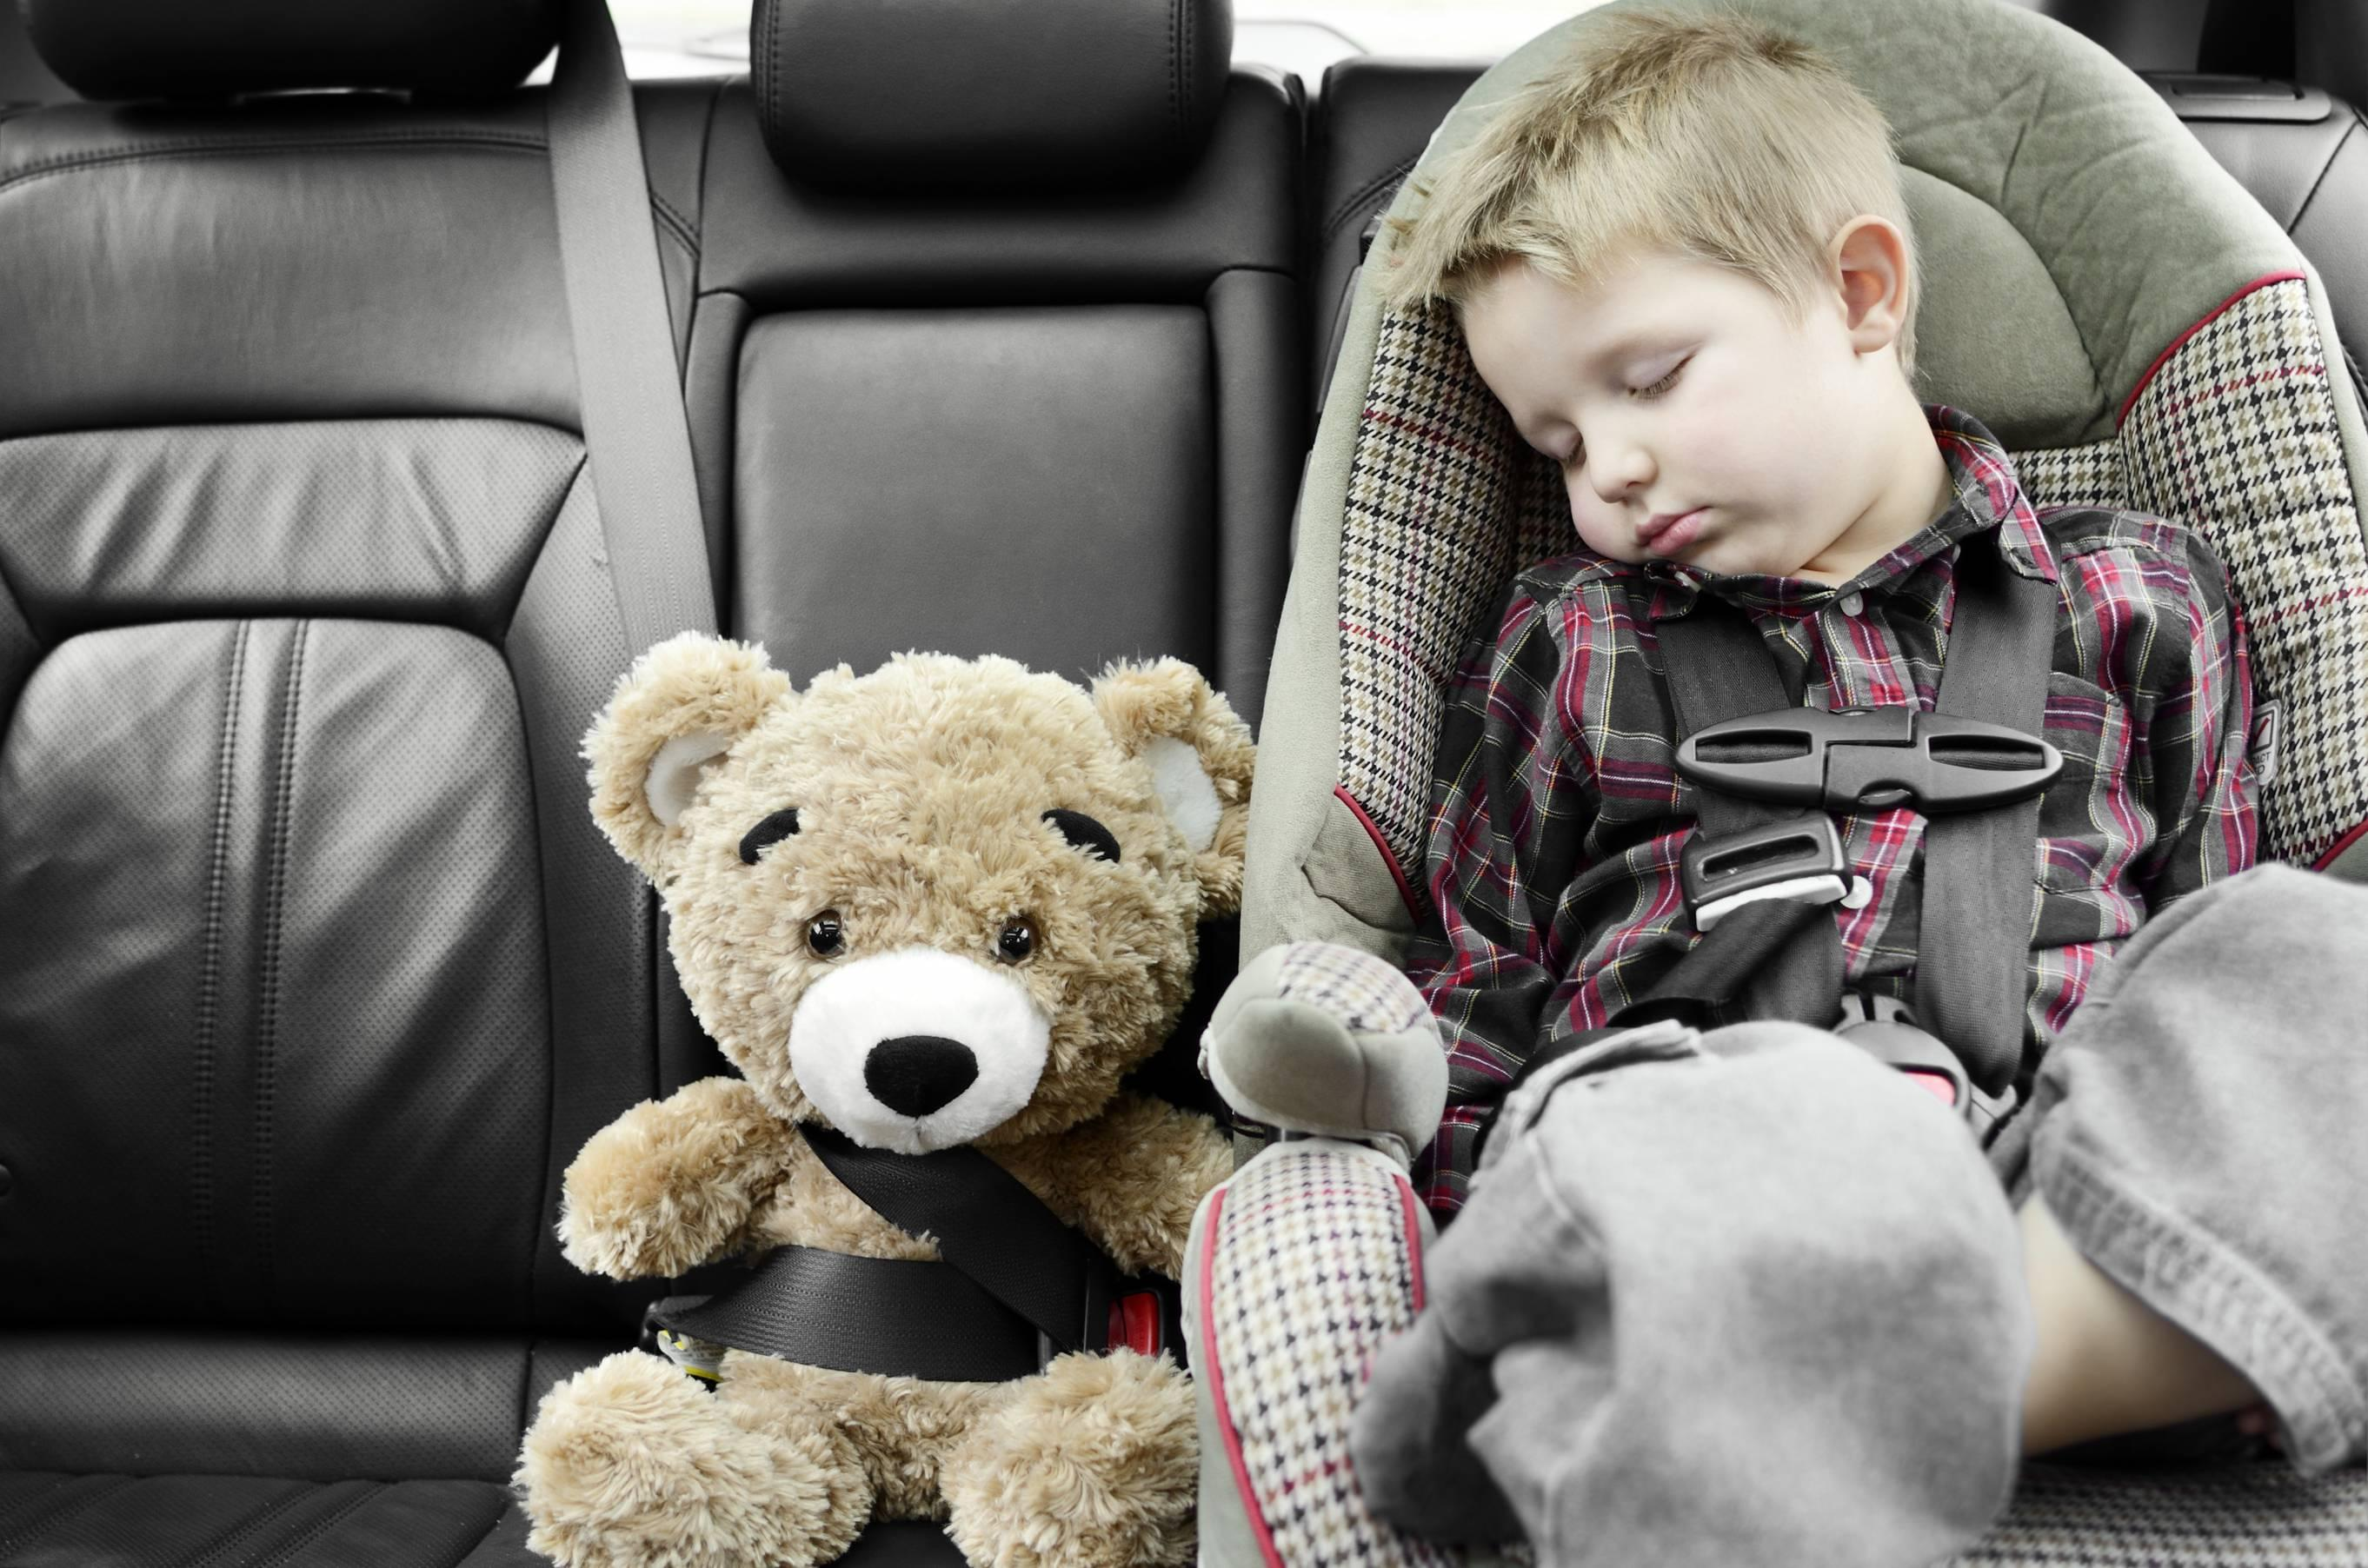 Child asleep in car seat next to teddy bear, car-seat safety